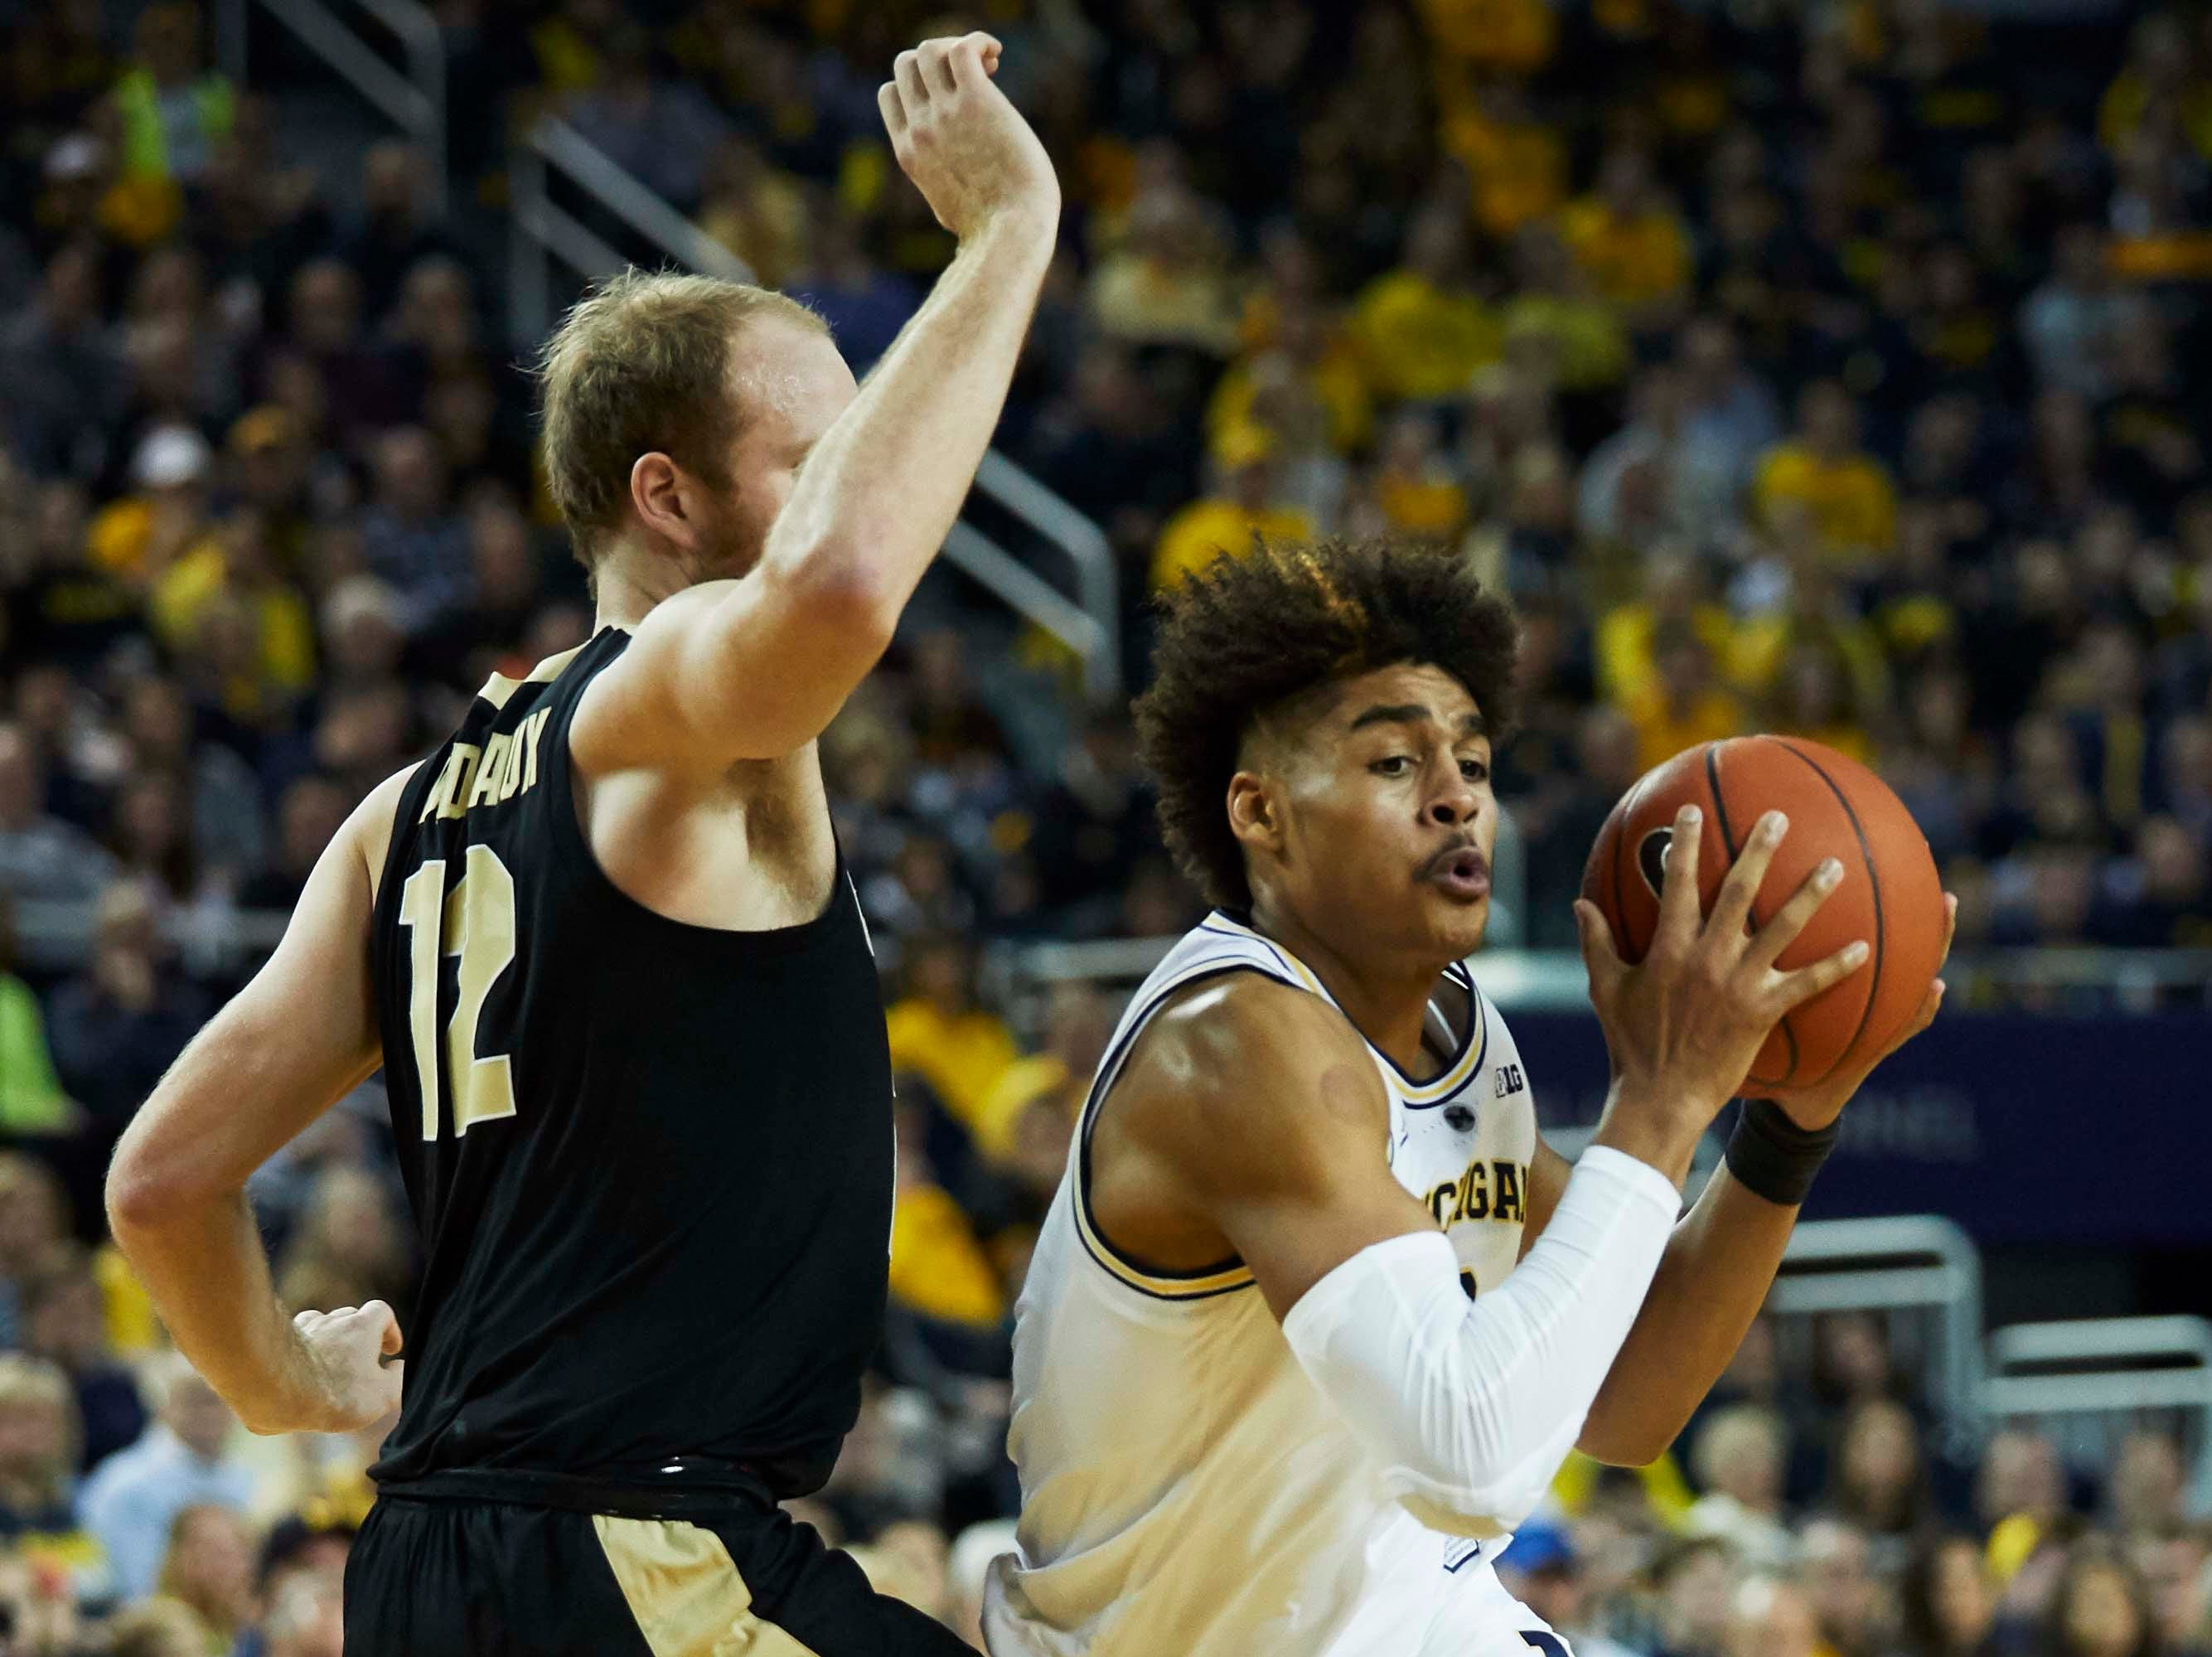 Dec 1, 2018; Ann Arbor, MI, USA; Michigan Wolverines guard Jordan Poole (2) moves the ball on Purdue Boilermakers forward Evan Boudreaux (12) in the first half at Crisler Center. Mandatory Credit: Rick Osentoski-USA TODAY Sports